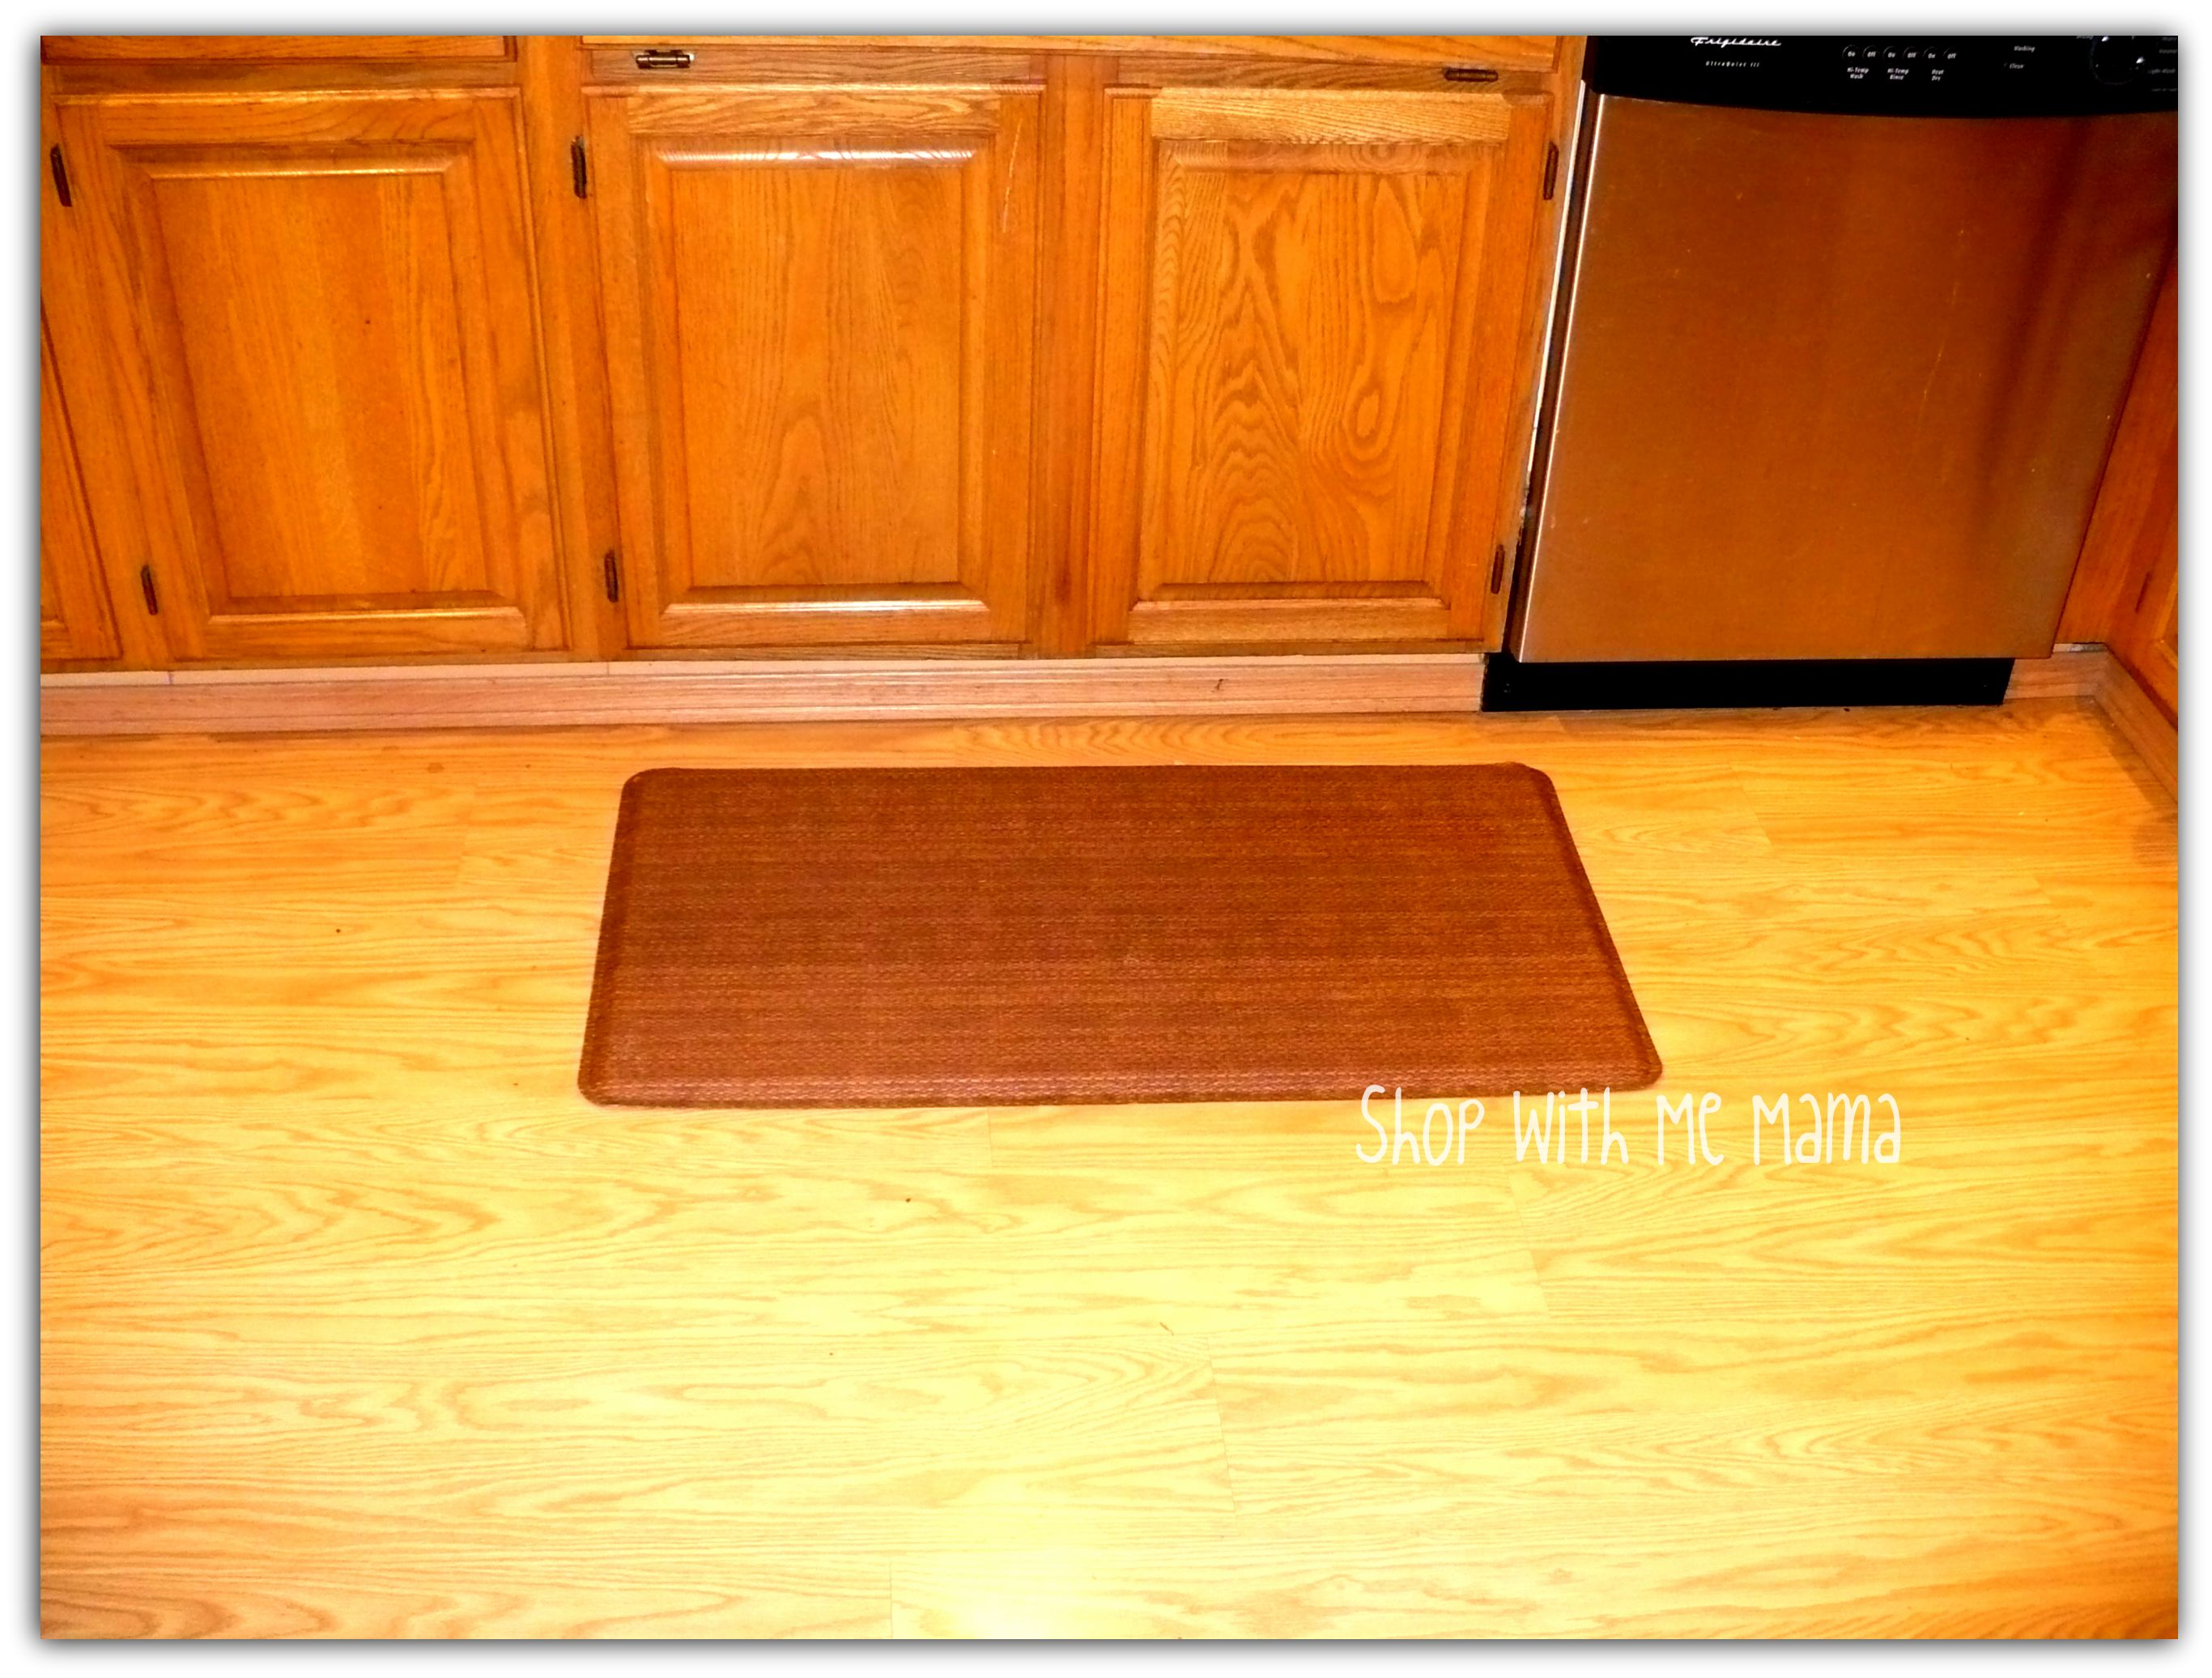 Gel Floor Mats For Kitchen Gelpro Mat Review Shop With Me Mama